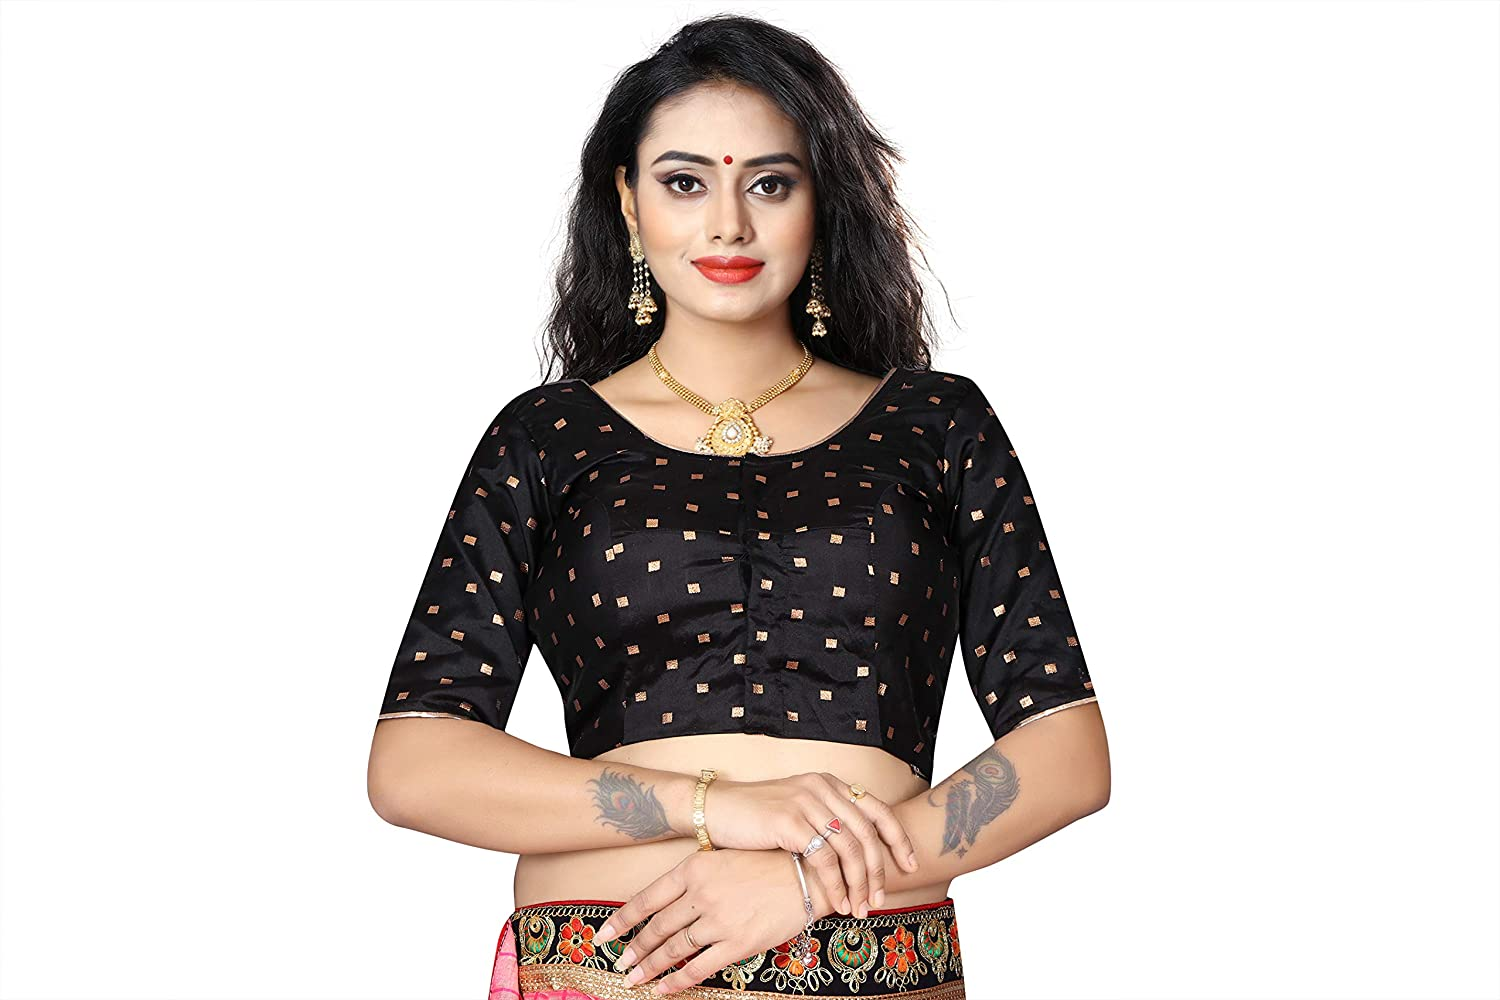 Globon Fashion Designer Women S Party Wear Bollywood Readymade Indian Style Saree Blouse Padded Brocade Choli At Amazon Women S Clothing Store